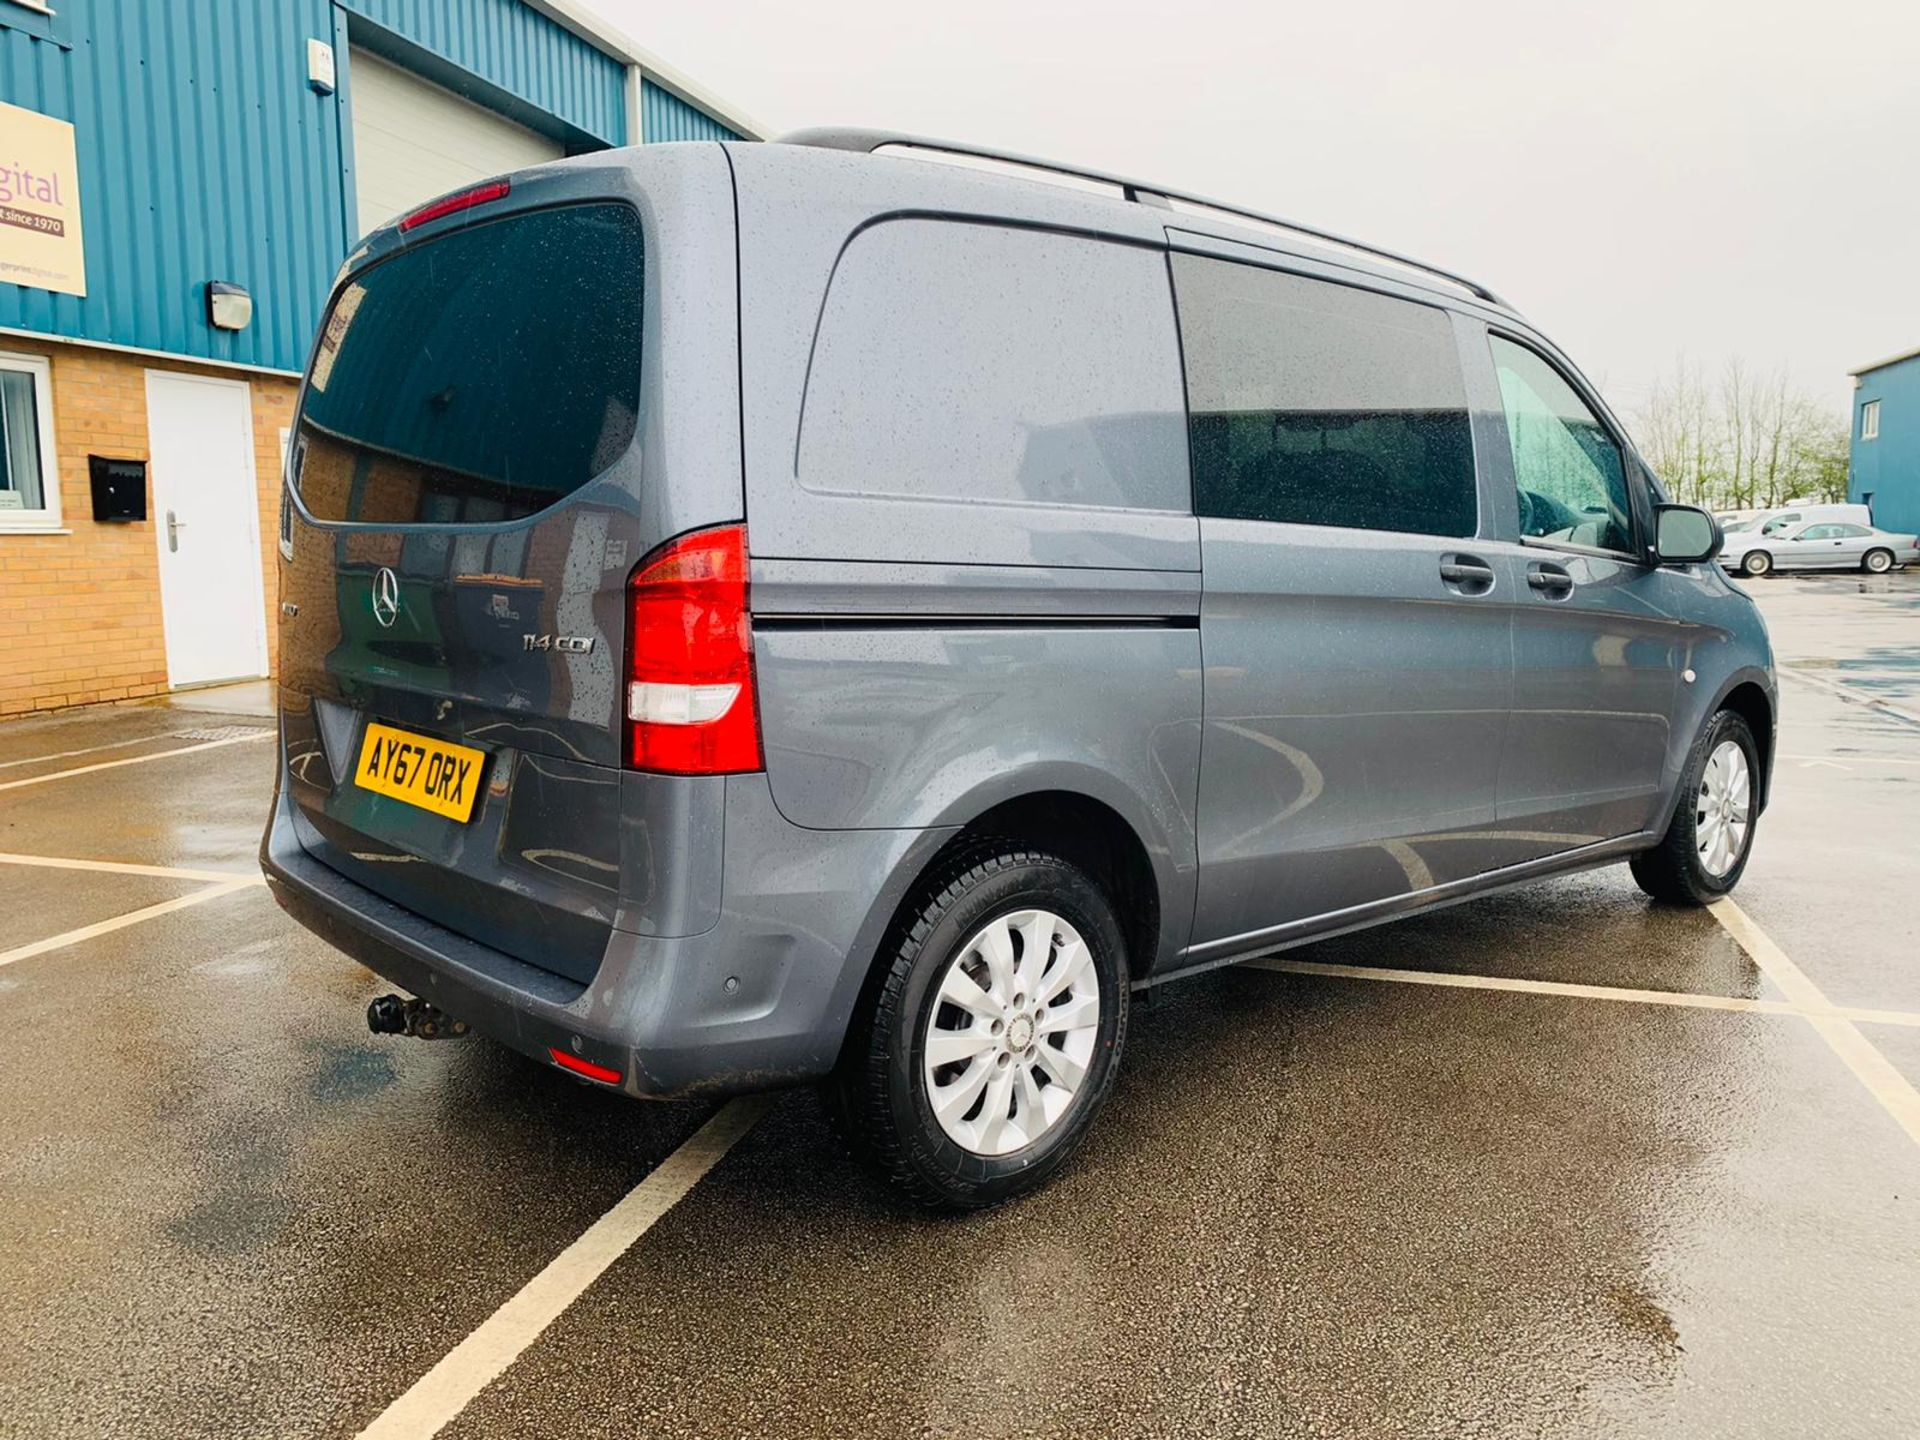 Mercedes Vito 114 Bluetec Dualiner/Crew Van - Auto - Air Con - 2018 Model- 1 Owner From New - Image 9 of 30